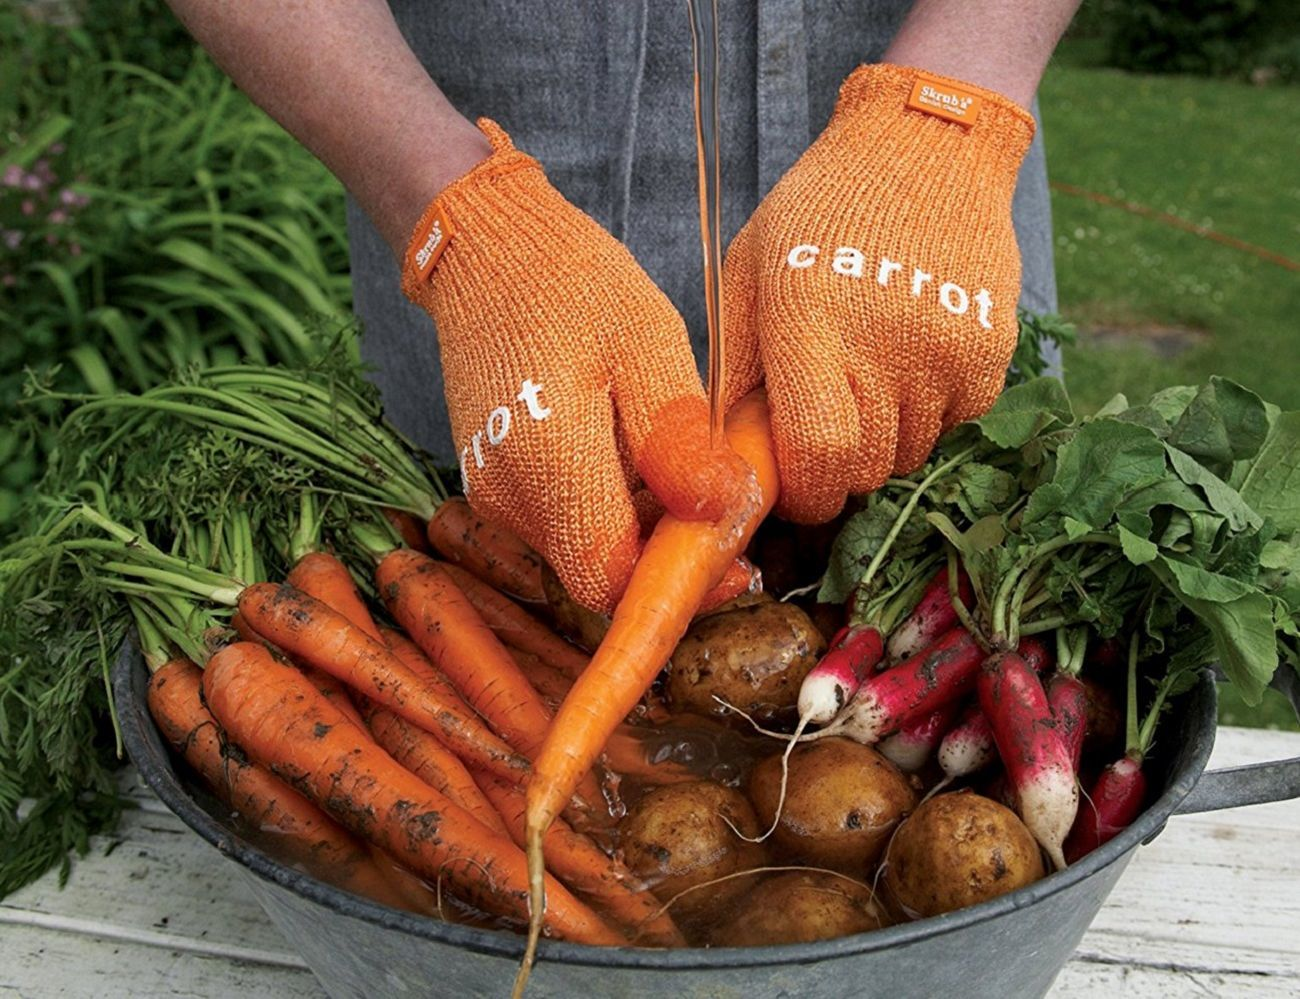 Skrub'a Veggie Gloves